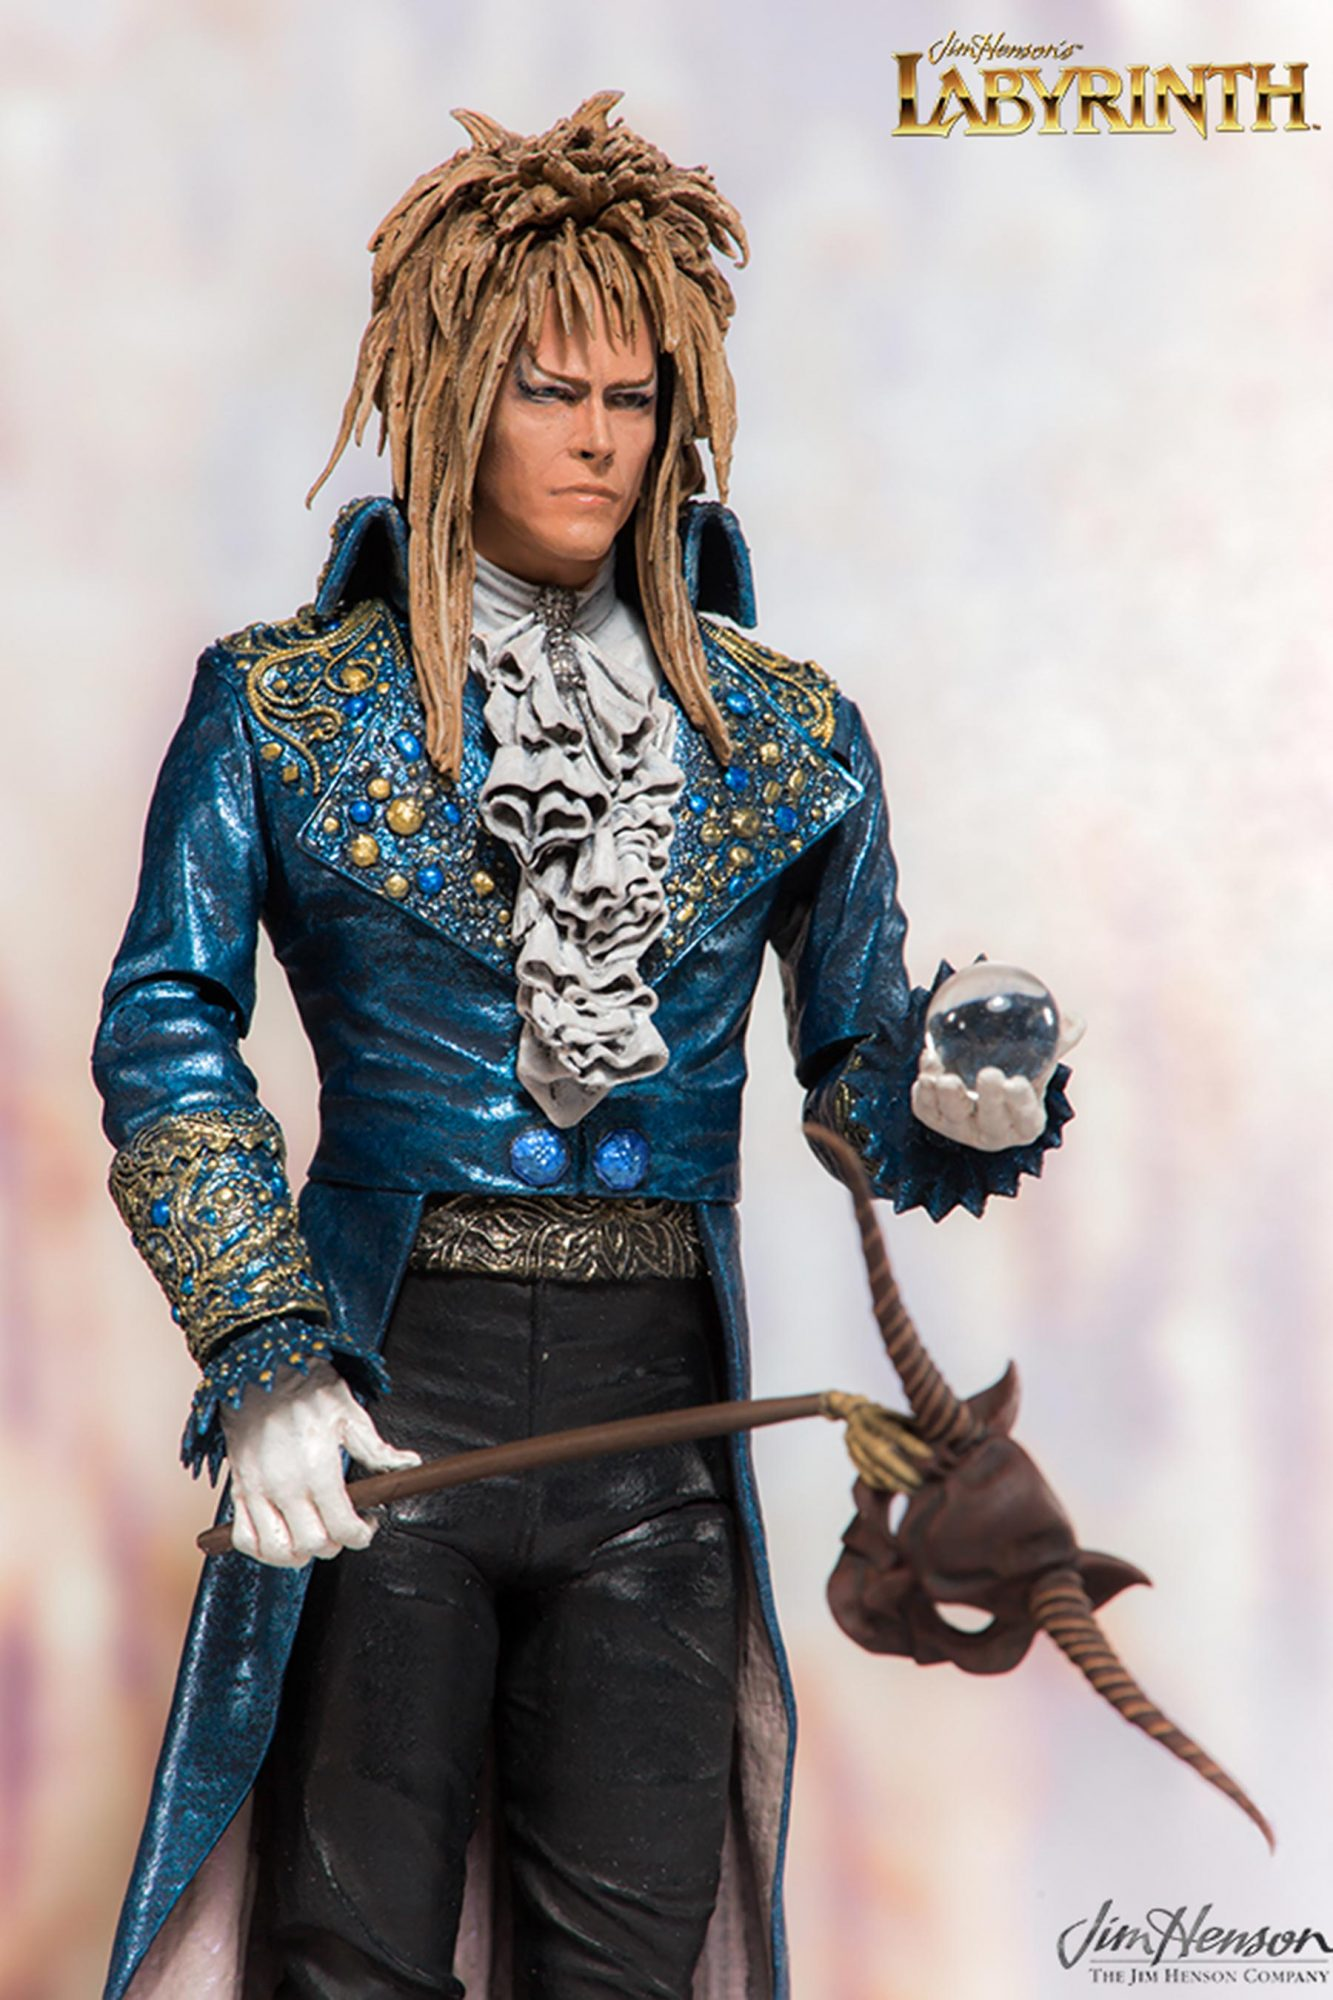 Labyrinth Toy CR: McFarlane Toys